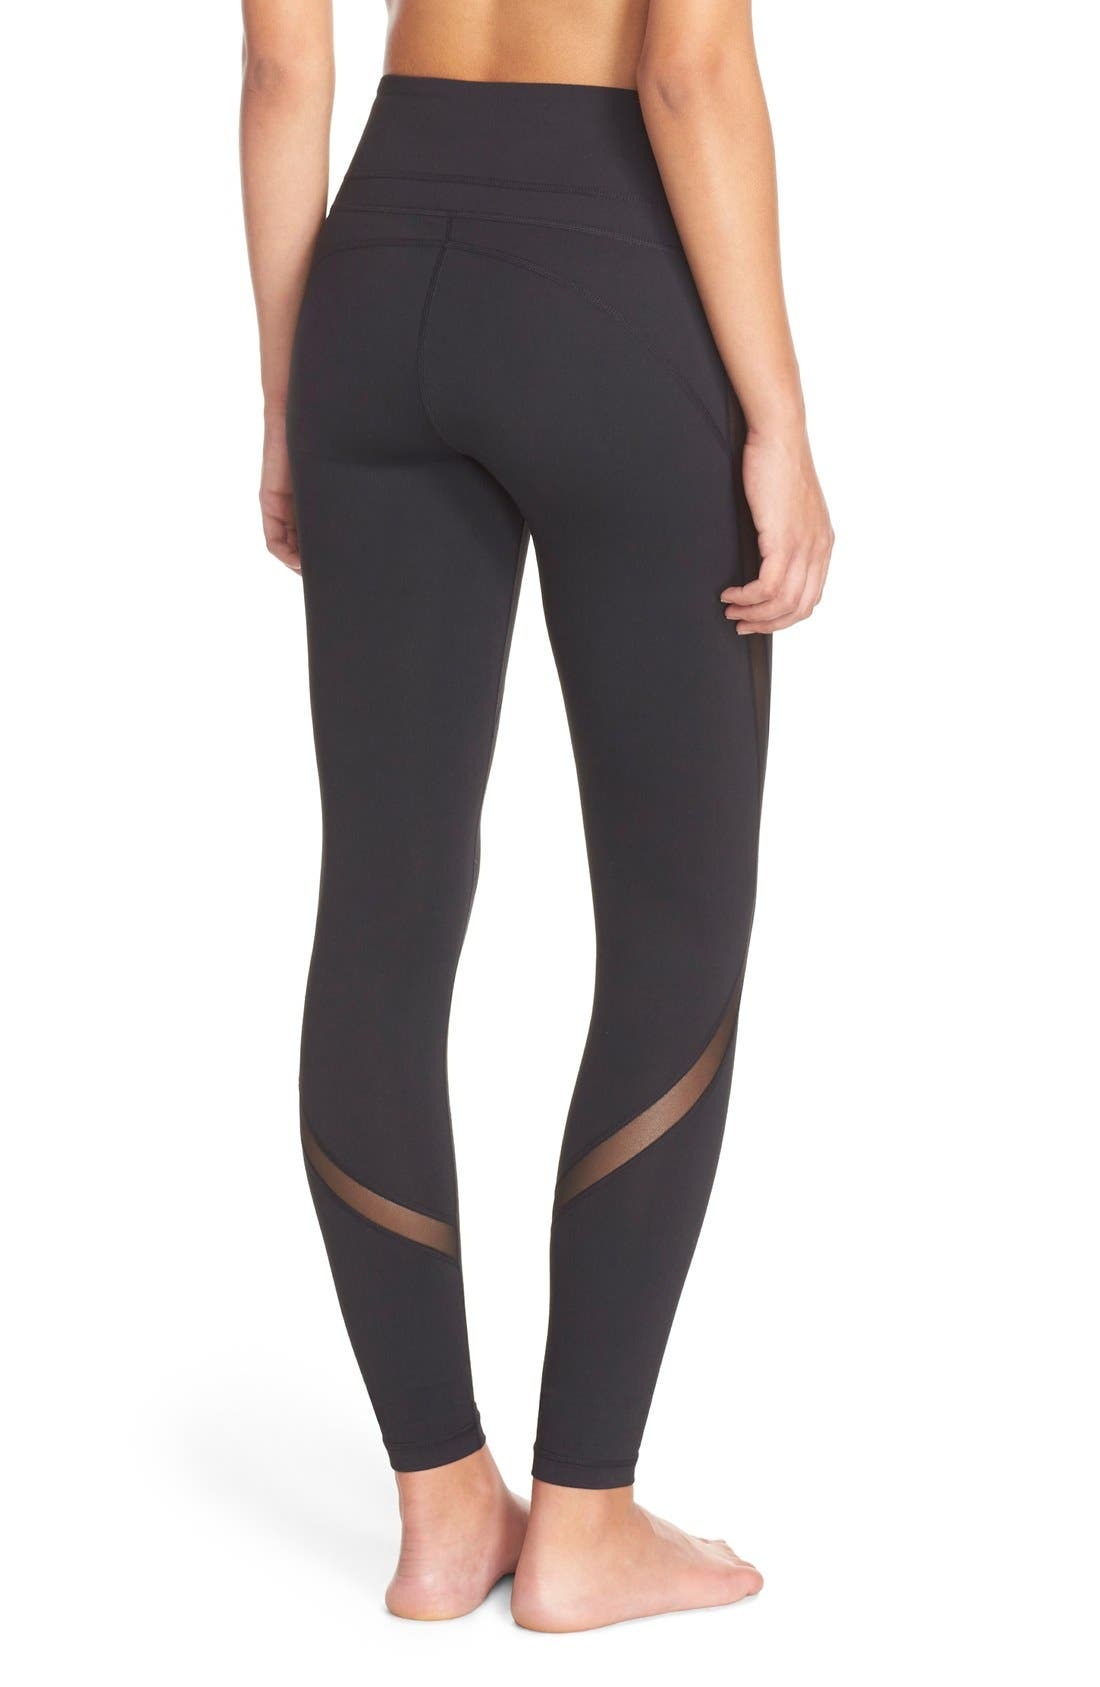 Alternate Image 3  - Zella Sheer to Here High Waist Leggings